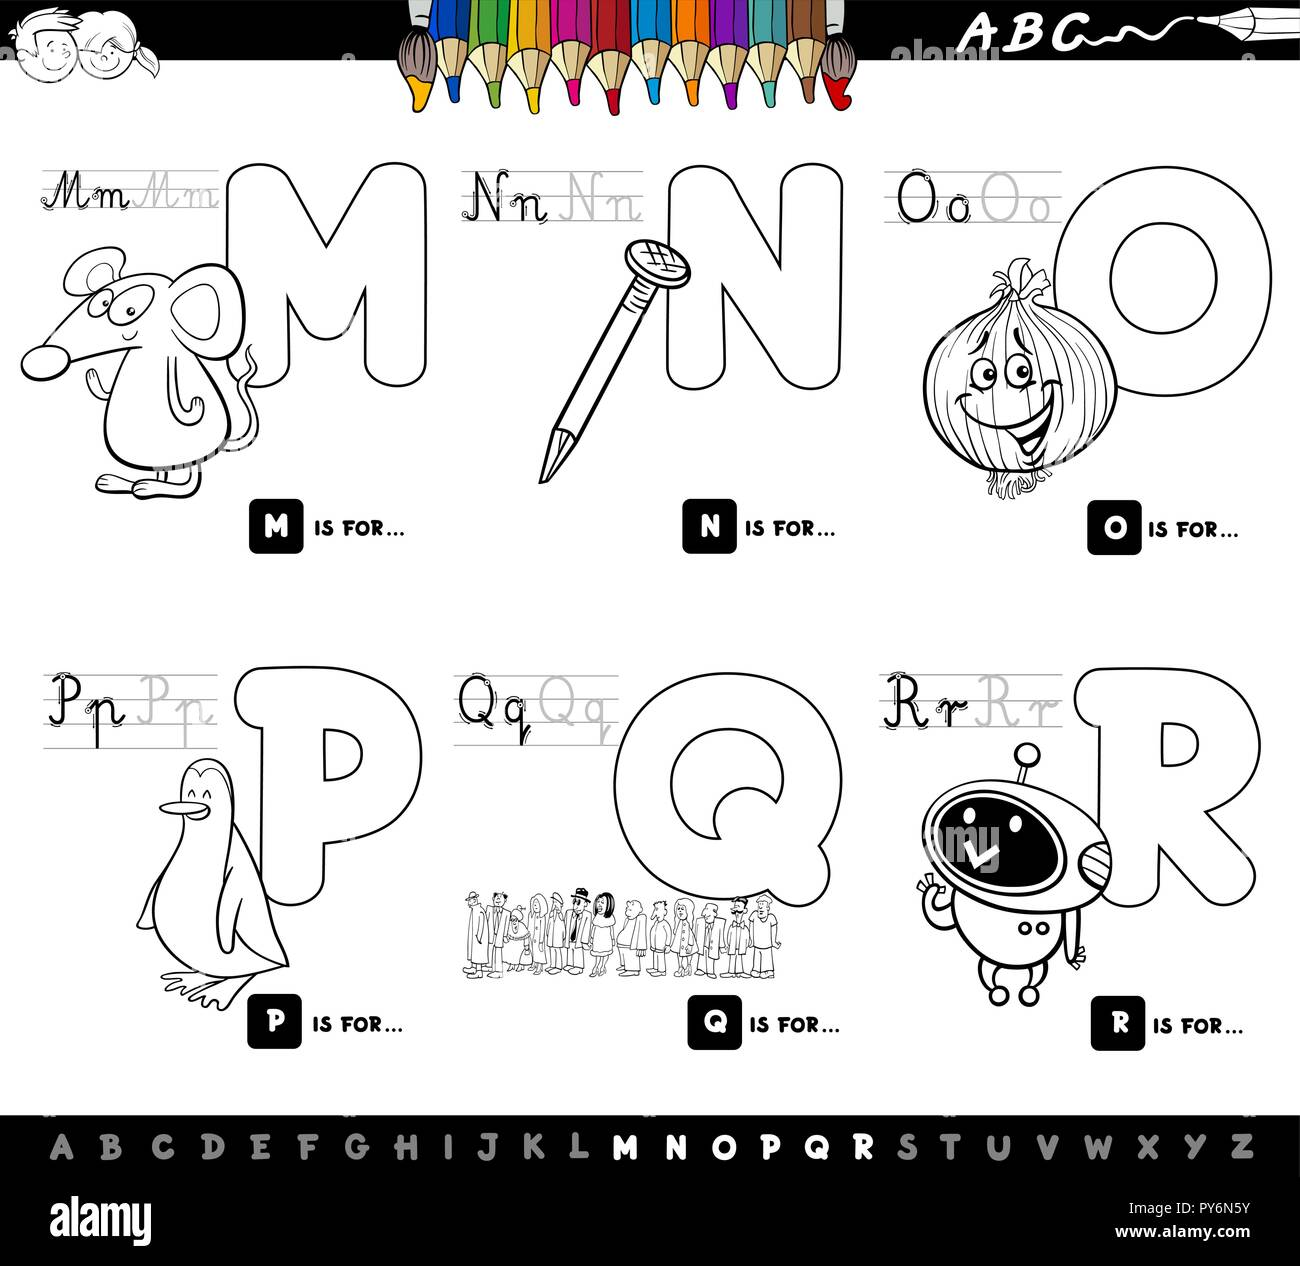 Black and White Cartoon Illustration of Capital Letters Alphabet Educational  Set for Reading and Writing Learning for Children from M to R Color Book 9e2e7ea4c